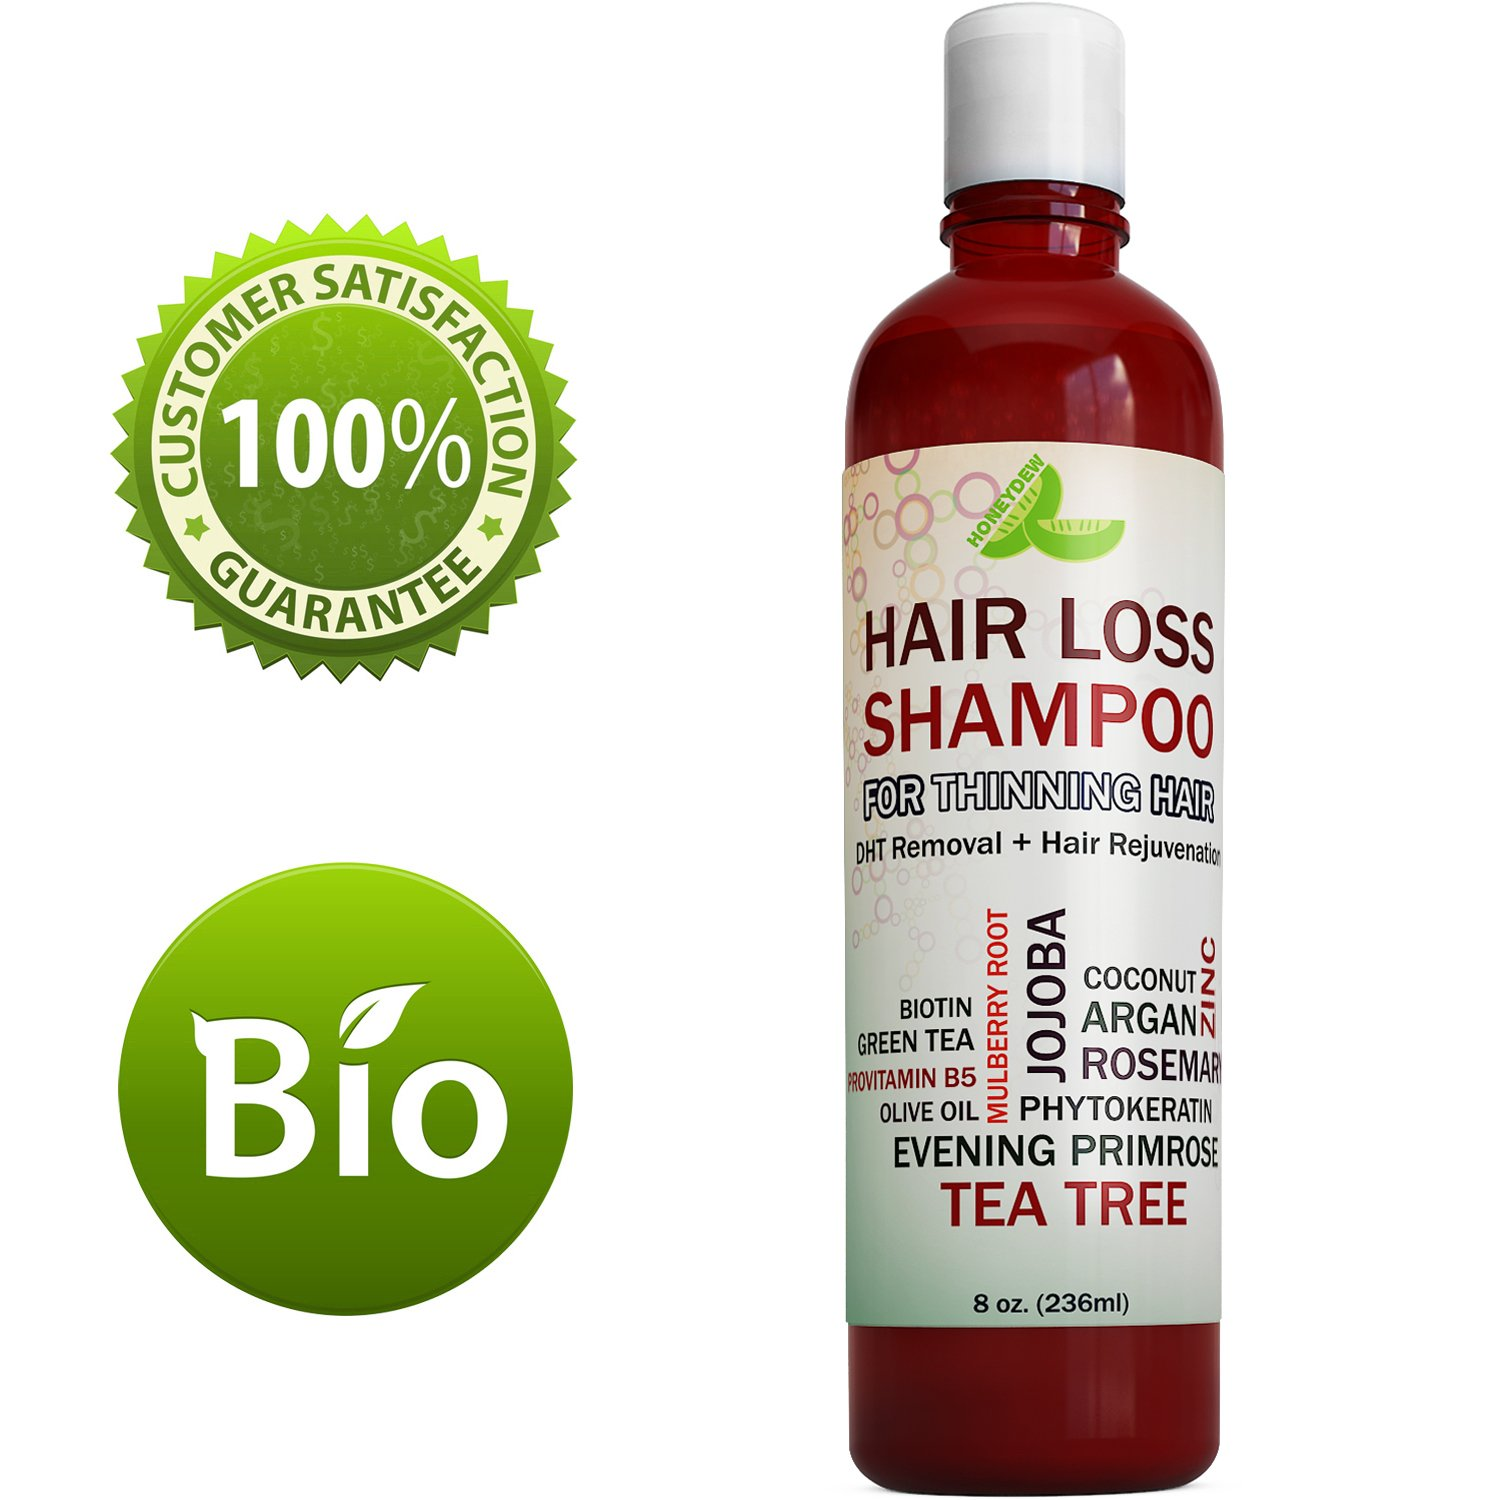 Best Hair Loss Shampoo Potent Hair Loss Fighting Formula 100% Natural  Topical Regrowth Treatment Restores